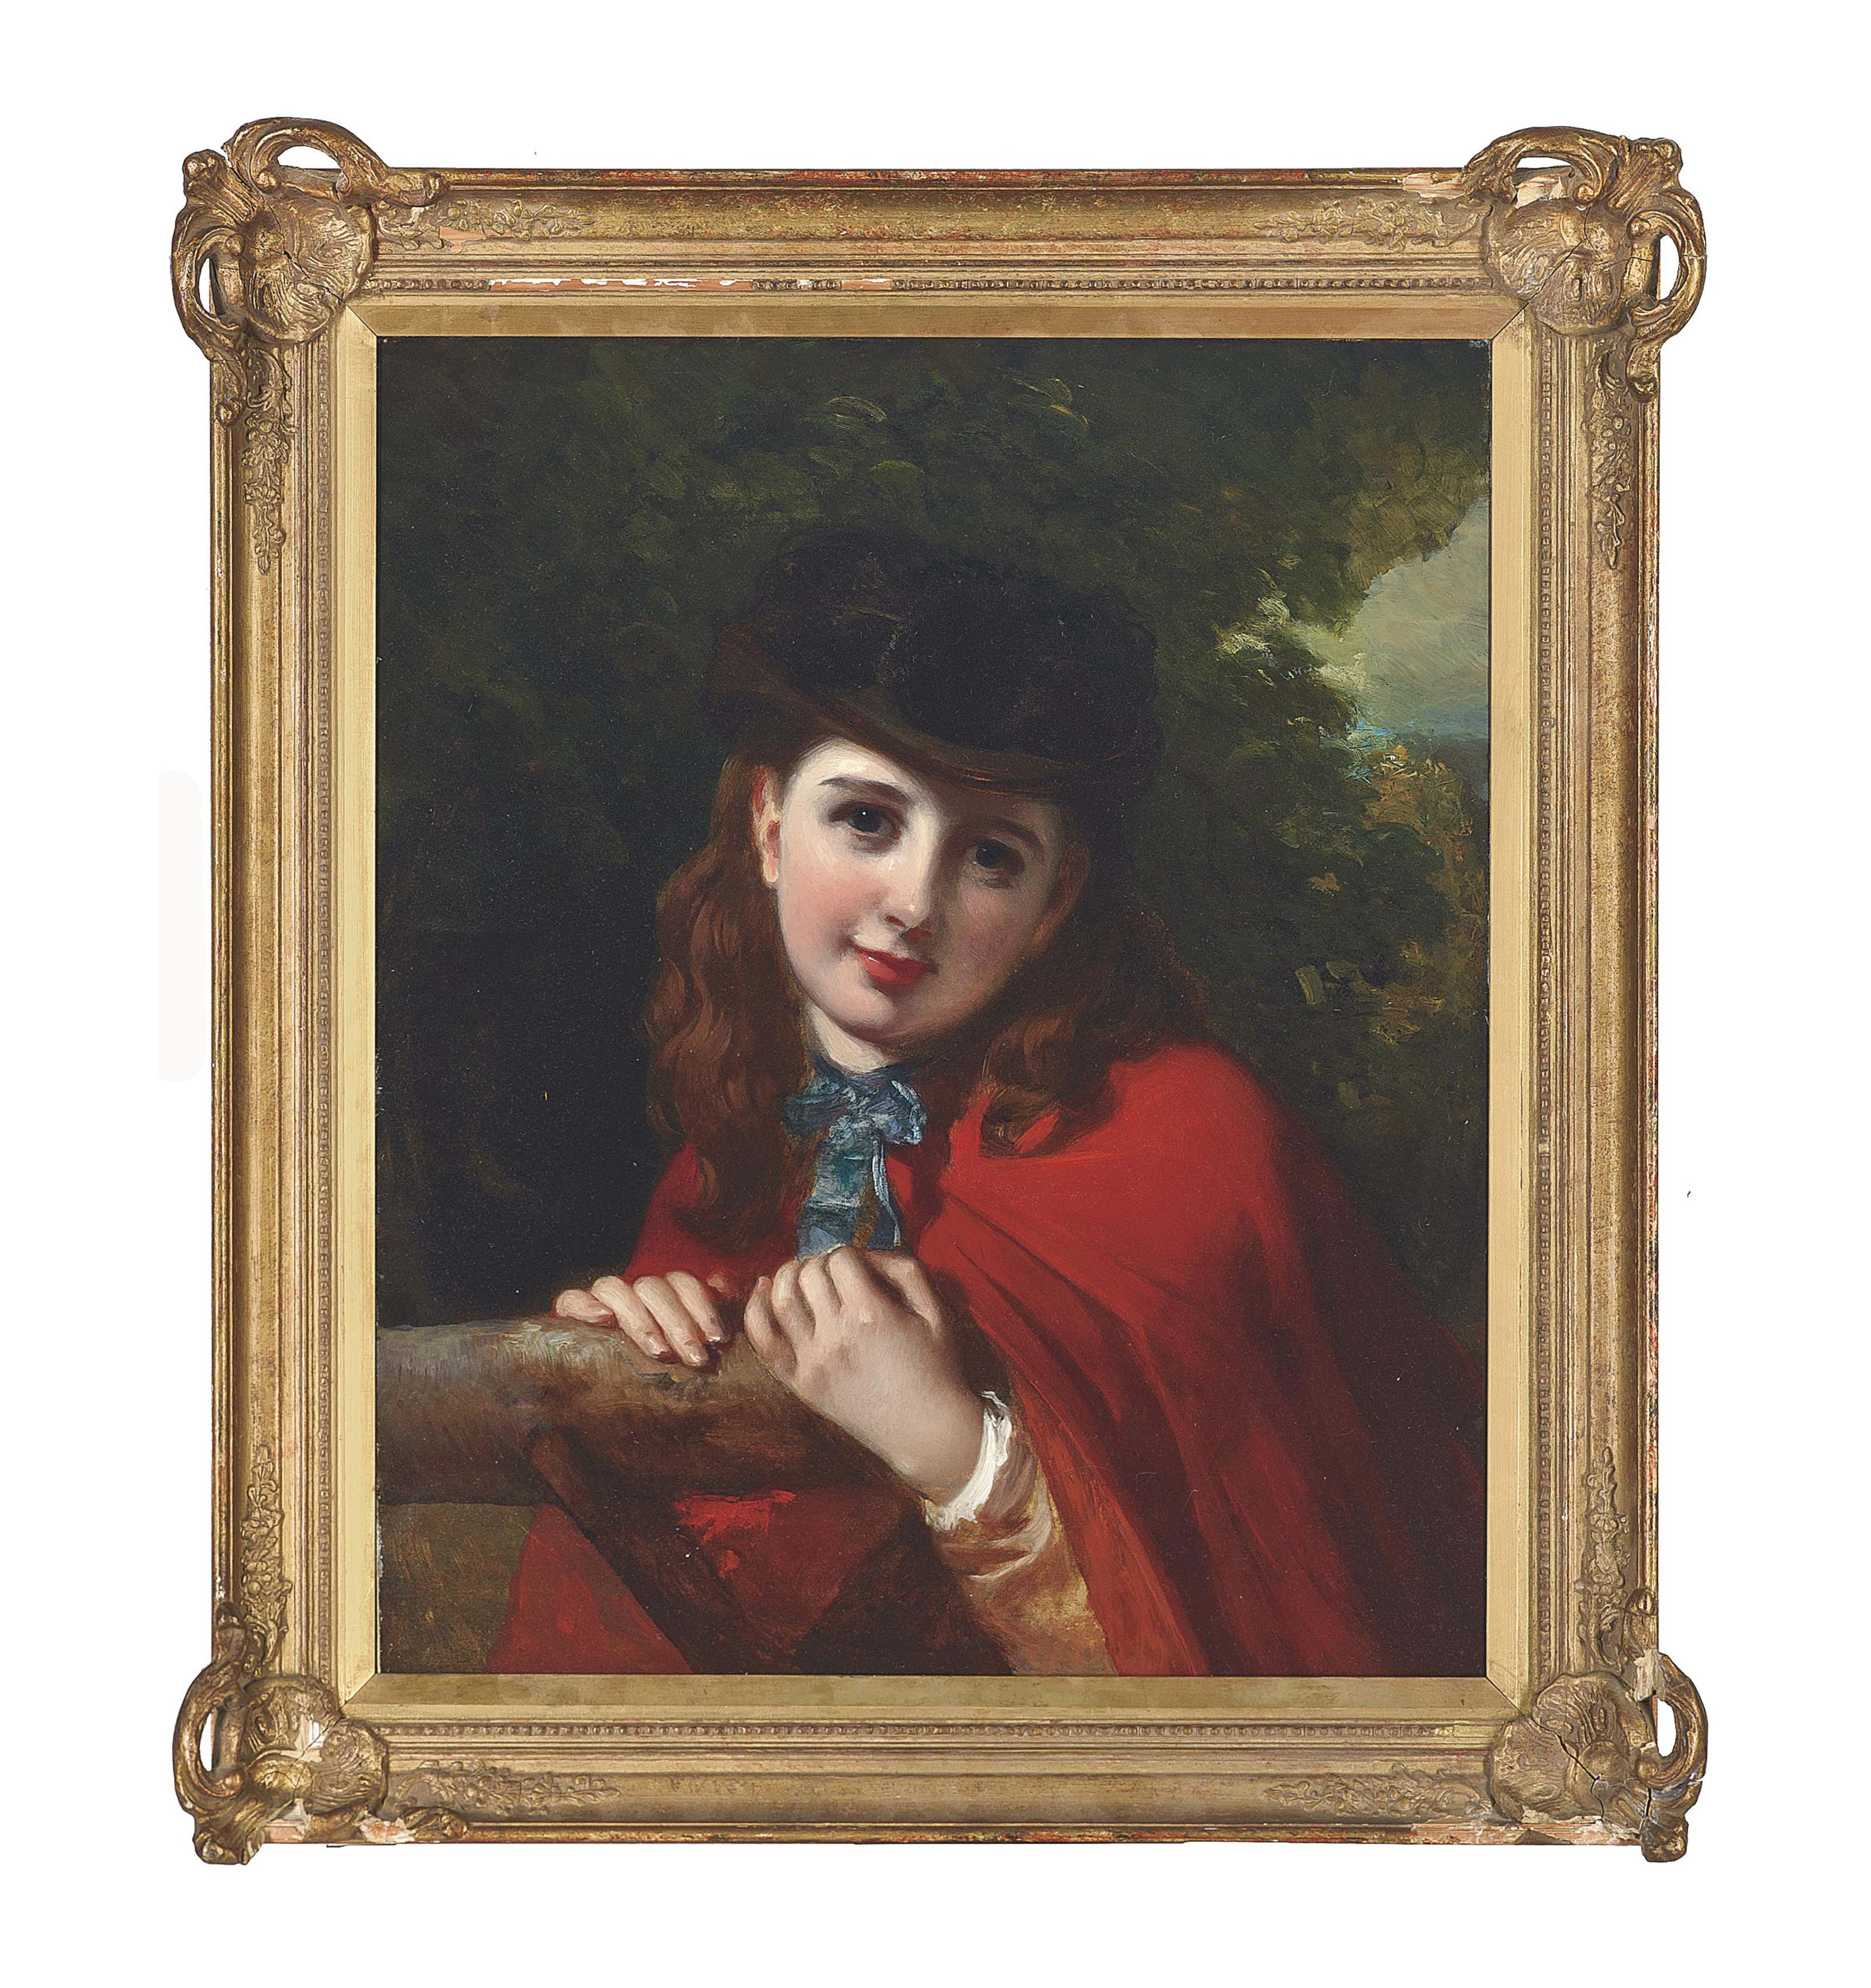 Portrait of a young girl in a red cloak